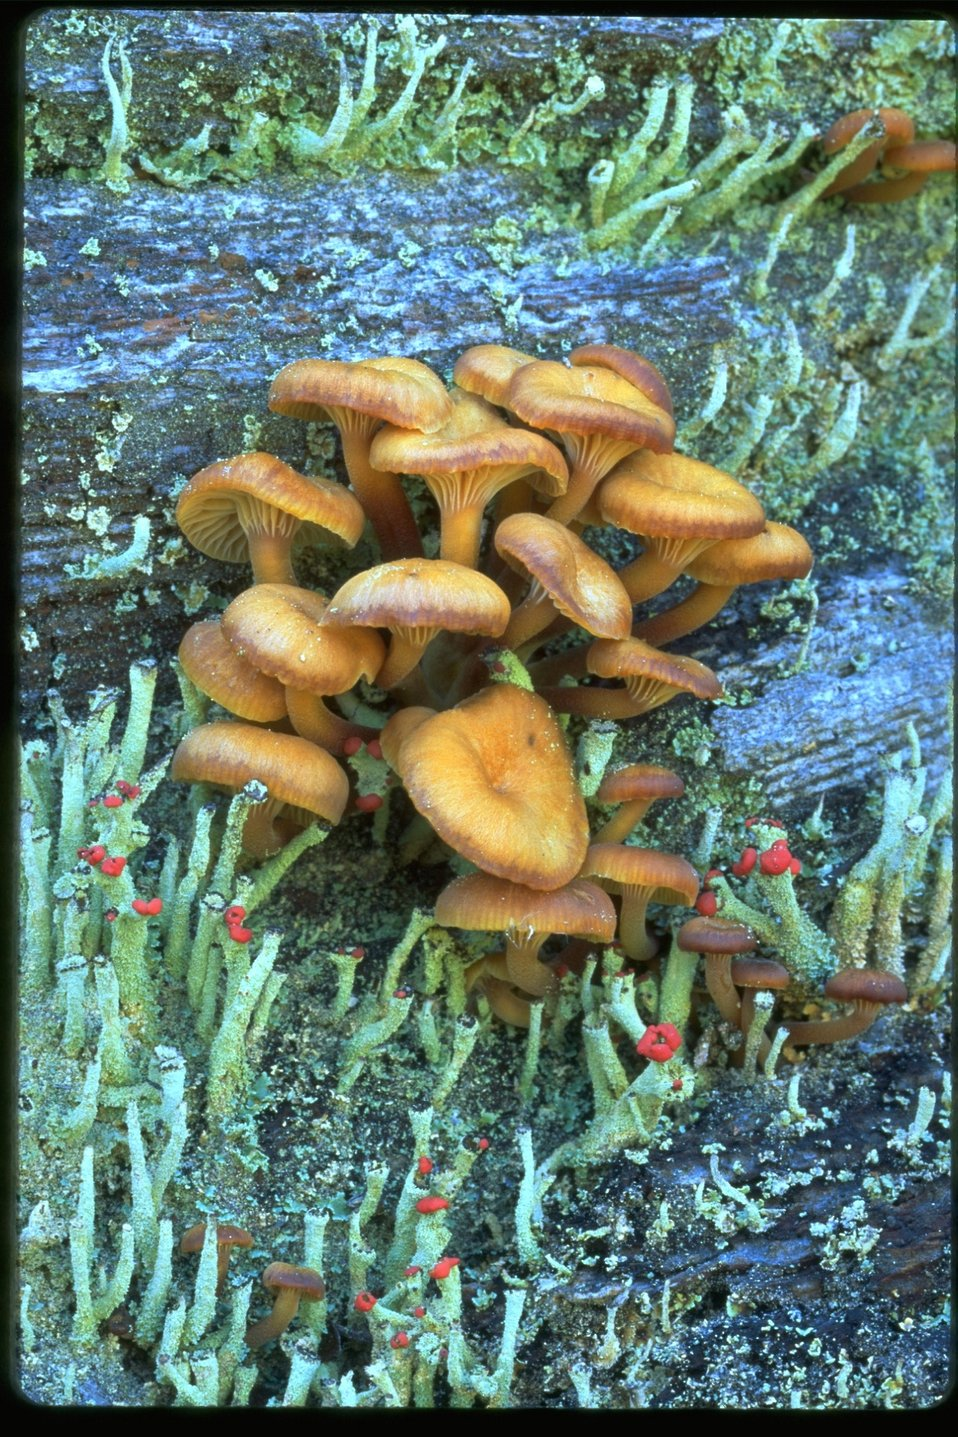 Small clump of mushrooms growing in grassy area.